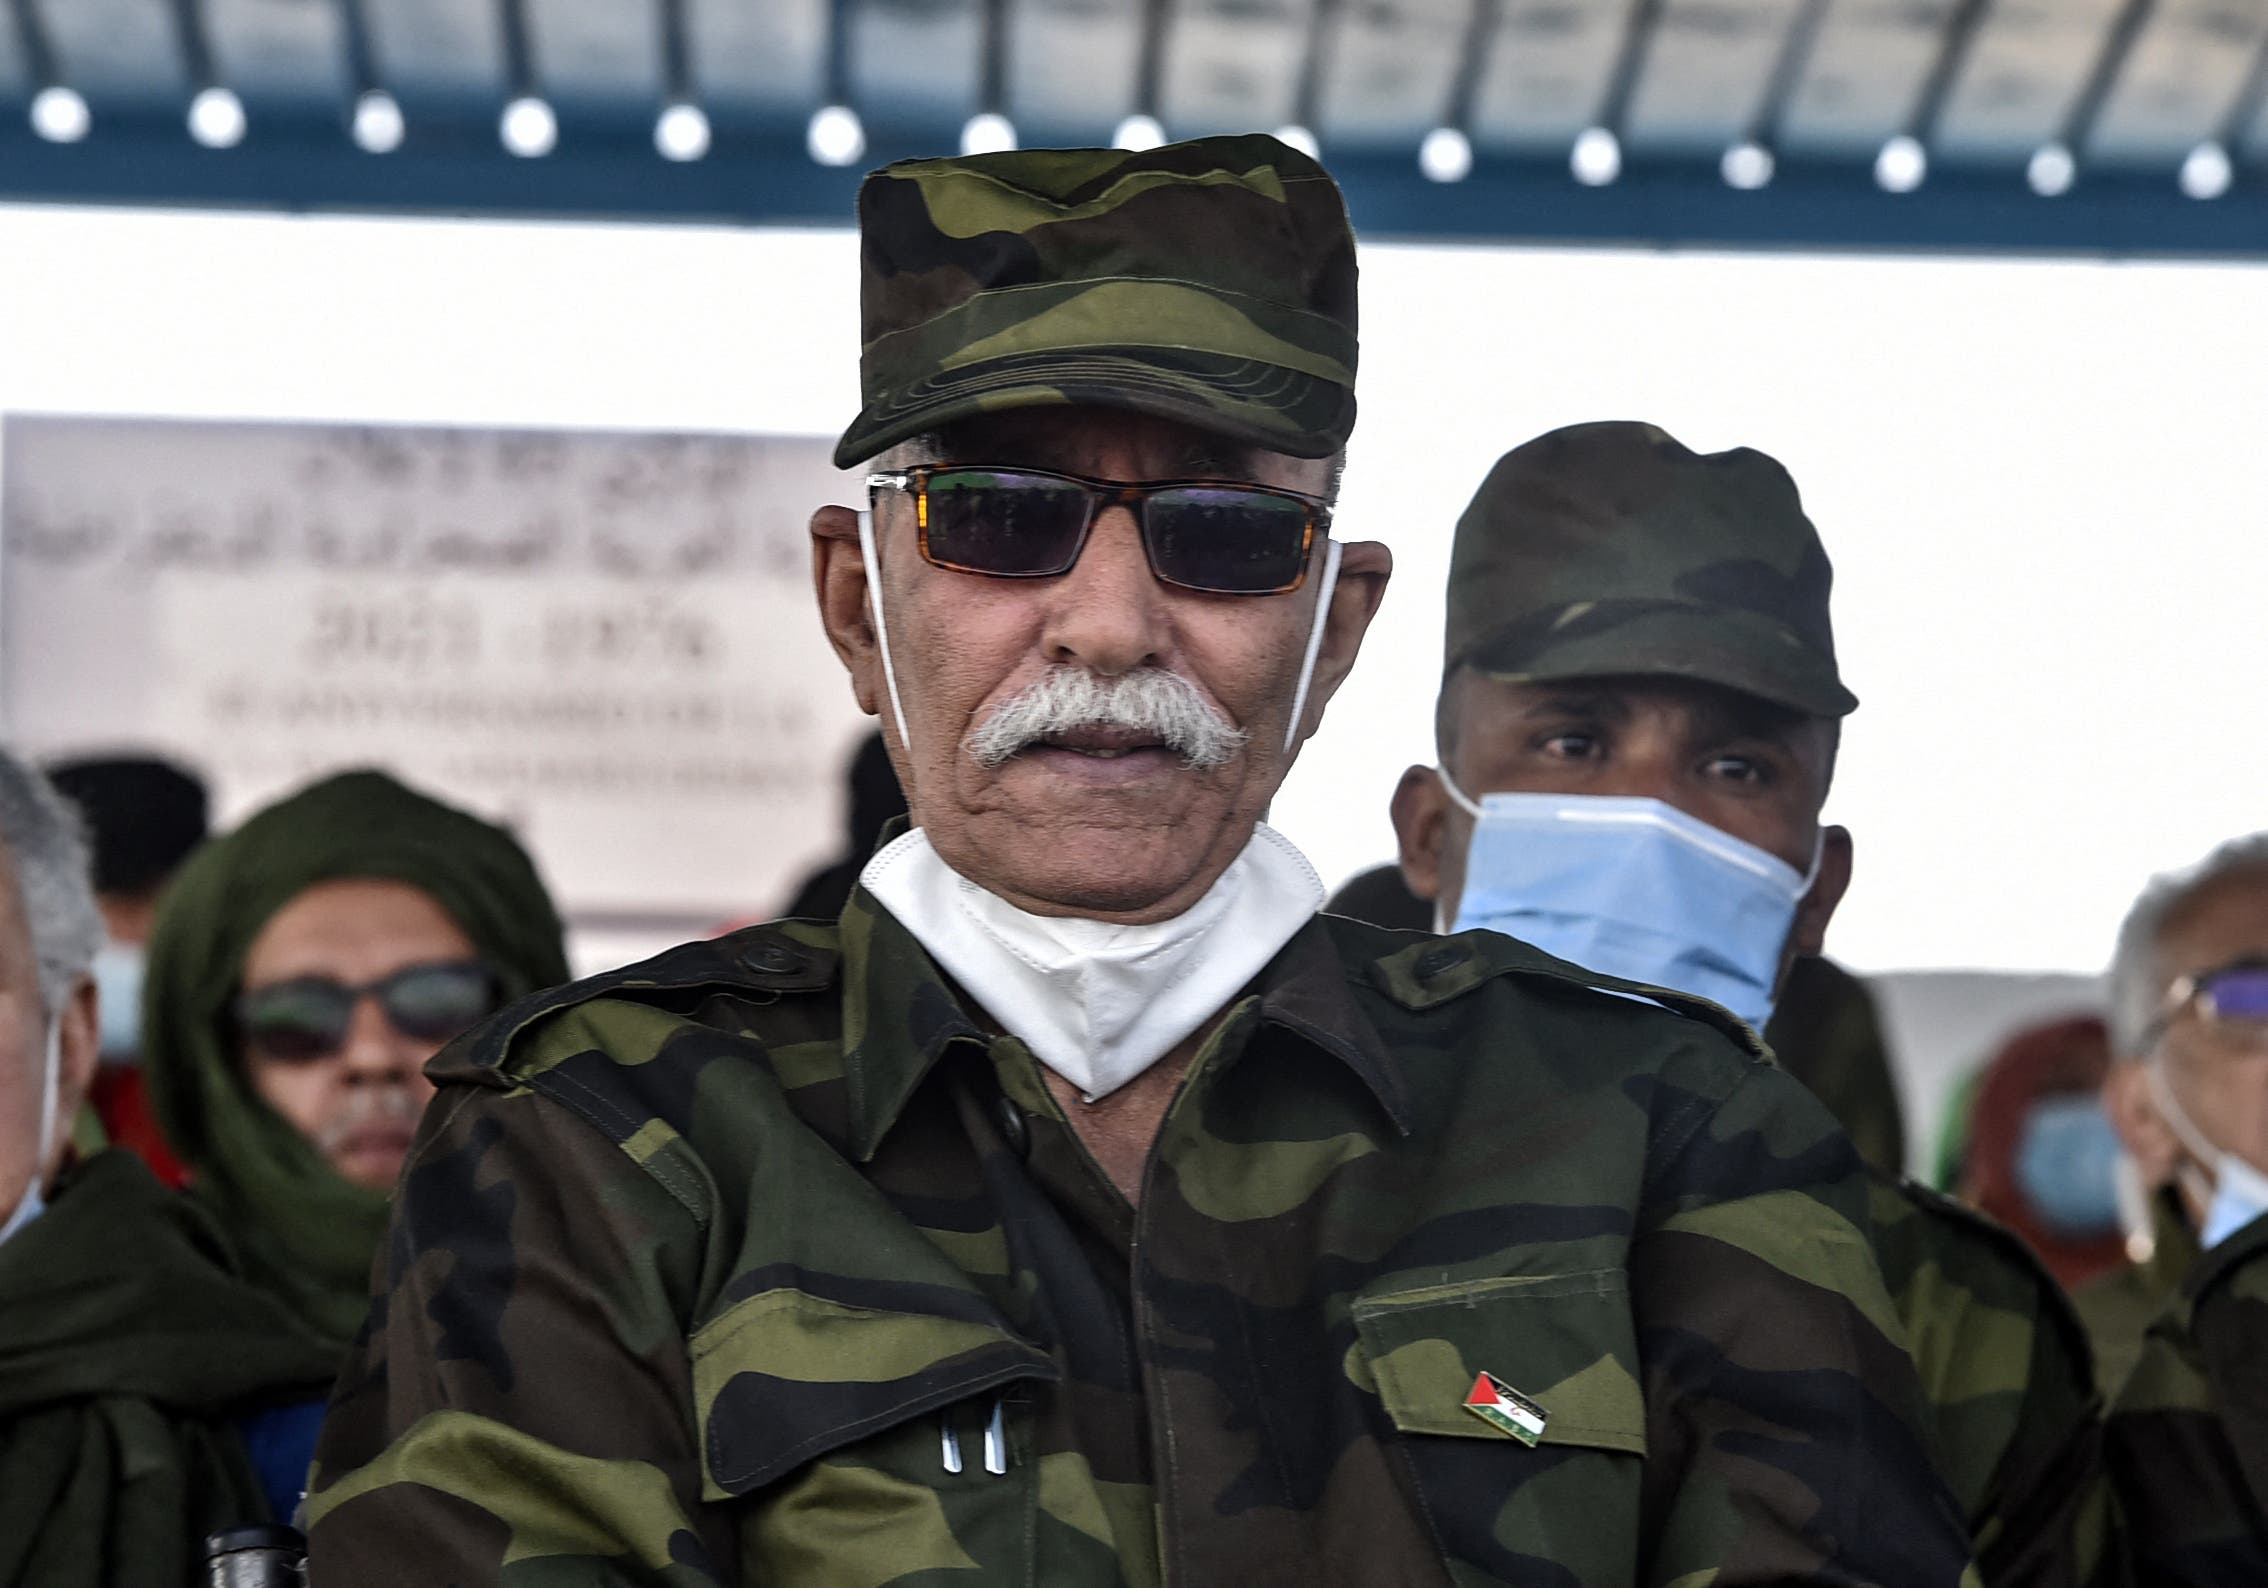 Brahim Ghali, President of the Sahrawi Arab Democratic Republic (SARD) and Secretary-General of the Polisario front, attends celebrations marking the 45th anniversary of the creation of the SARD, at a refugee camp on the outskirts of the southwestern Algerian city of Tindouf. A Spanish court has reopened a probe into accusations of crimes against humanity lodged against the leader of the Western Sahara movement, whose hospitalisation in Spain has sparked tensions between Madrid and Rabat. Brahim Ghali, who leads the Algeria-backed Polisario Front, has since mid April been treated for Covid-19 at a hospital in Logrono in northern Spain, angrying Rabat as Madrid grapples with a surge in migrants from Morocco at its north African enclave of Ceuta. (Stock image)